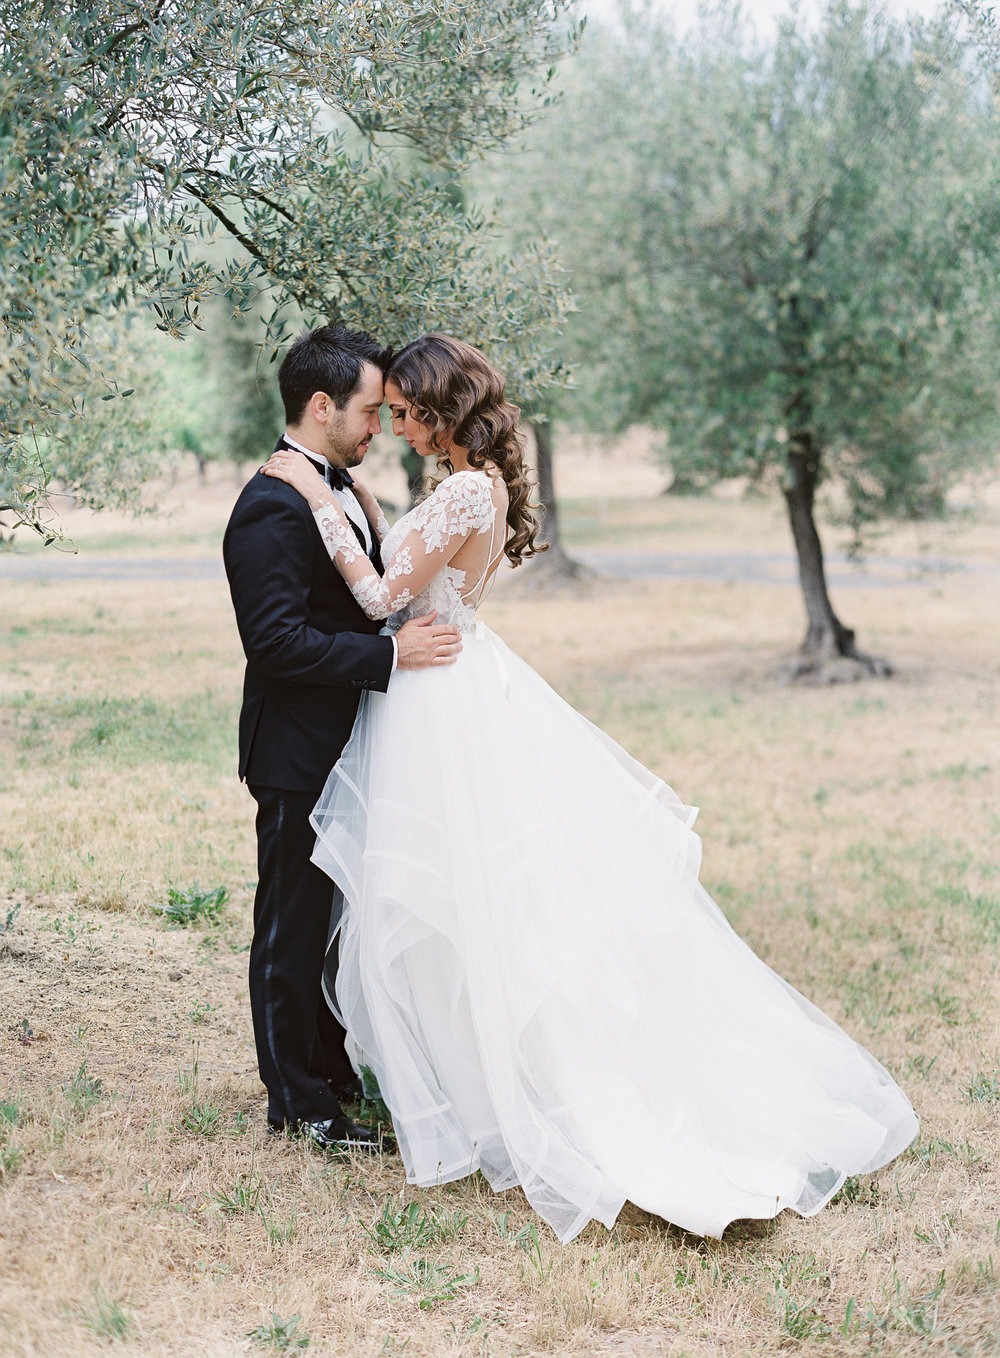 Meghan Mehan Photography | Fine Art Film Wedding Photographer | California | San Francisco | Napa | Sonoma | Santa Barbara | Big Sur | Destination Wedding Photographer 052.jpg